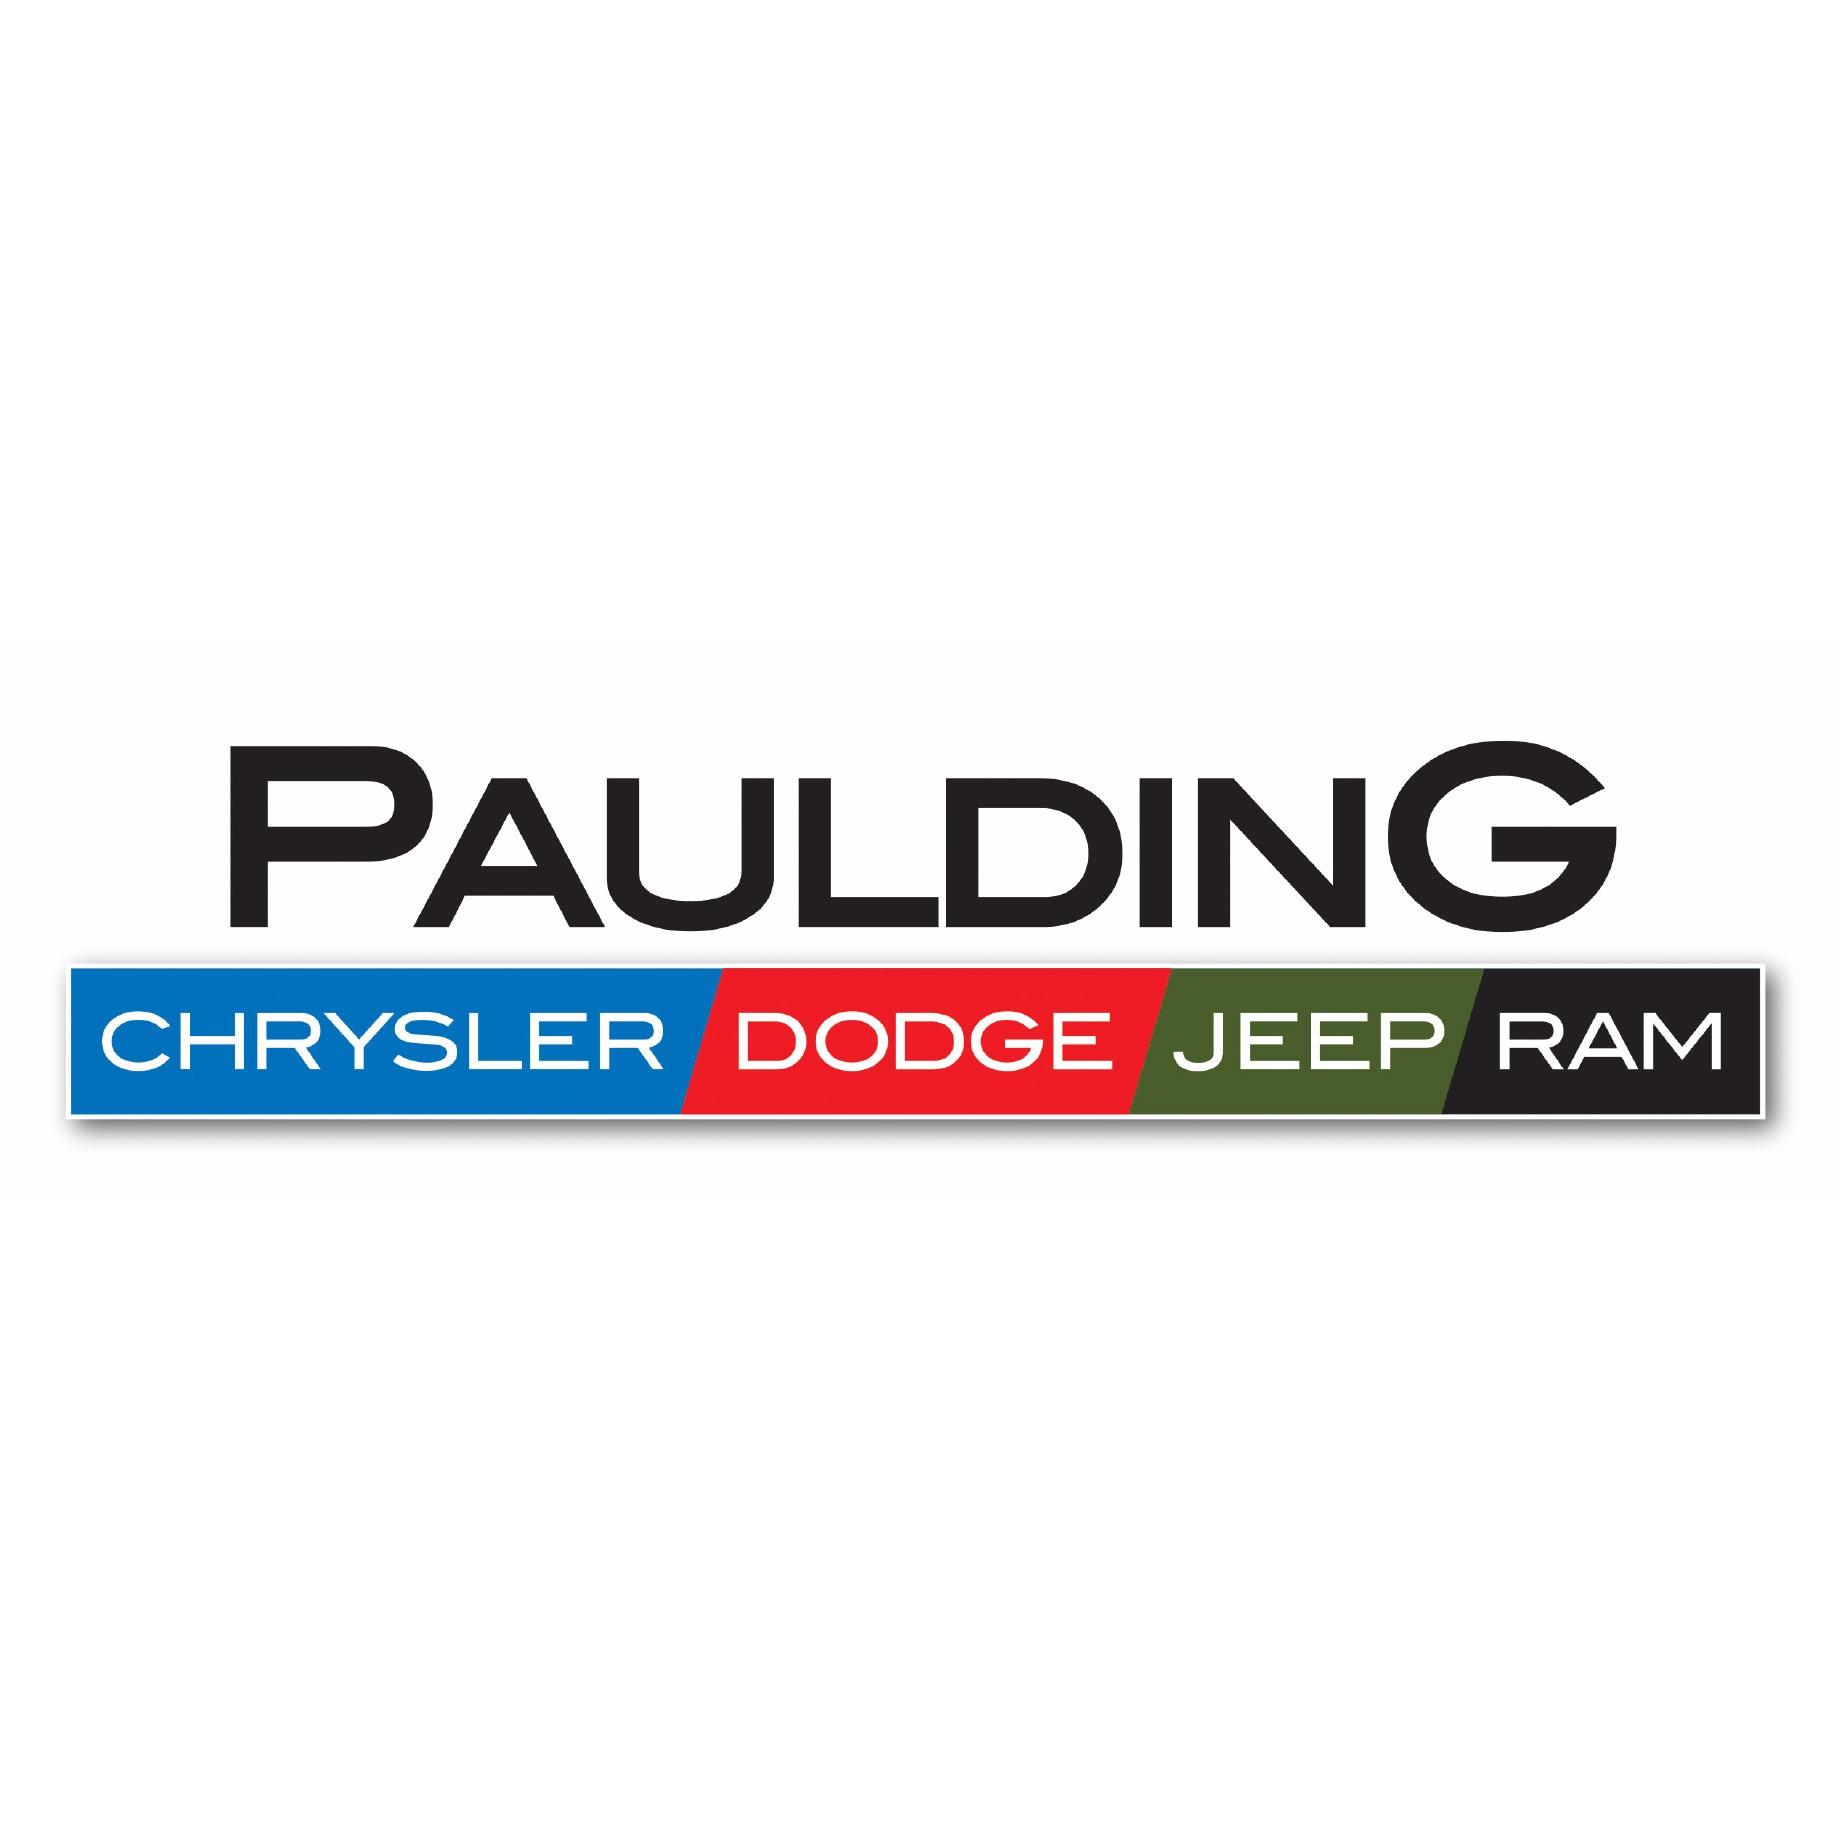 Paulding Chrysler Dodge Jeep Ram